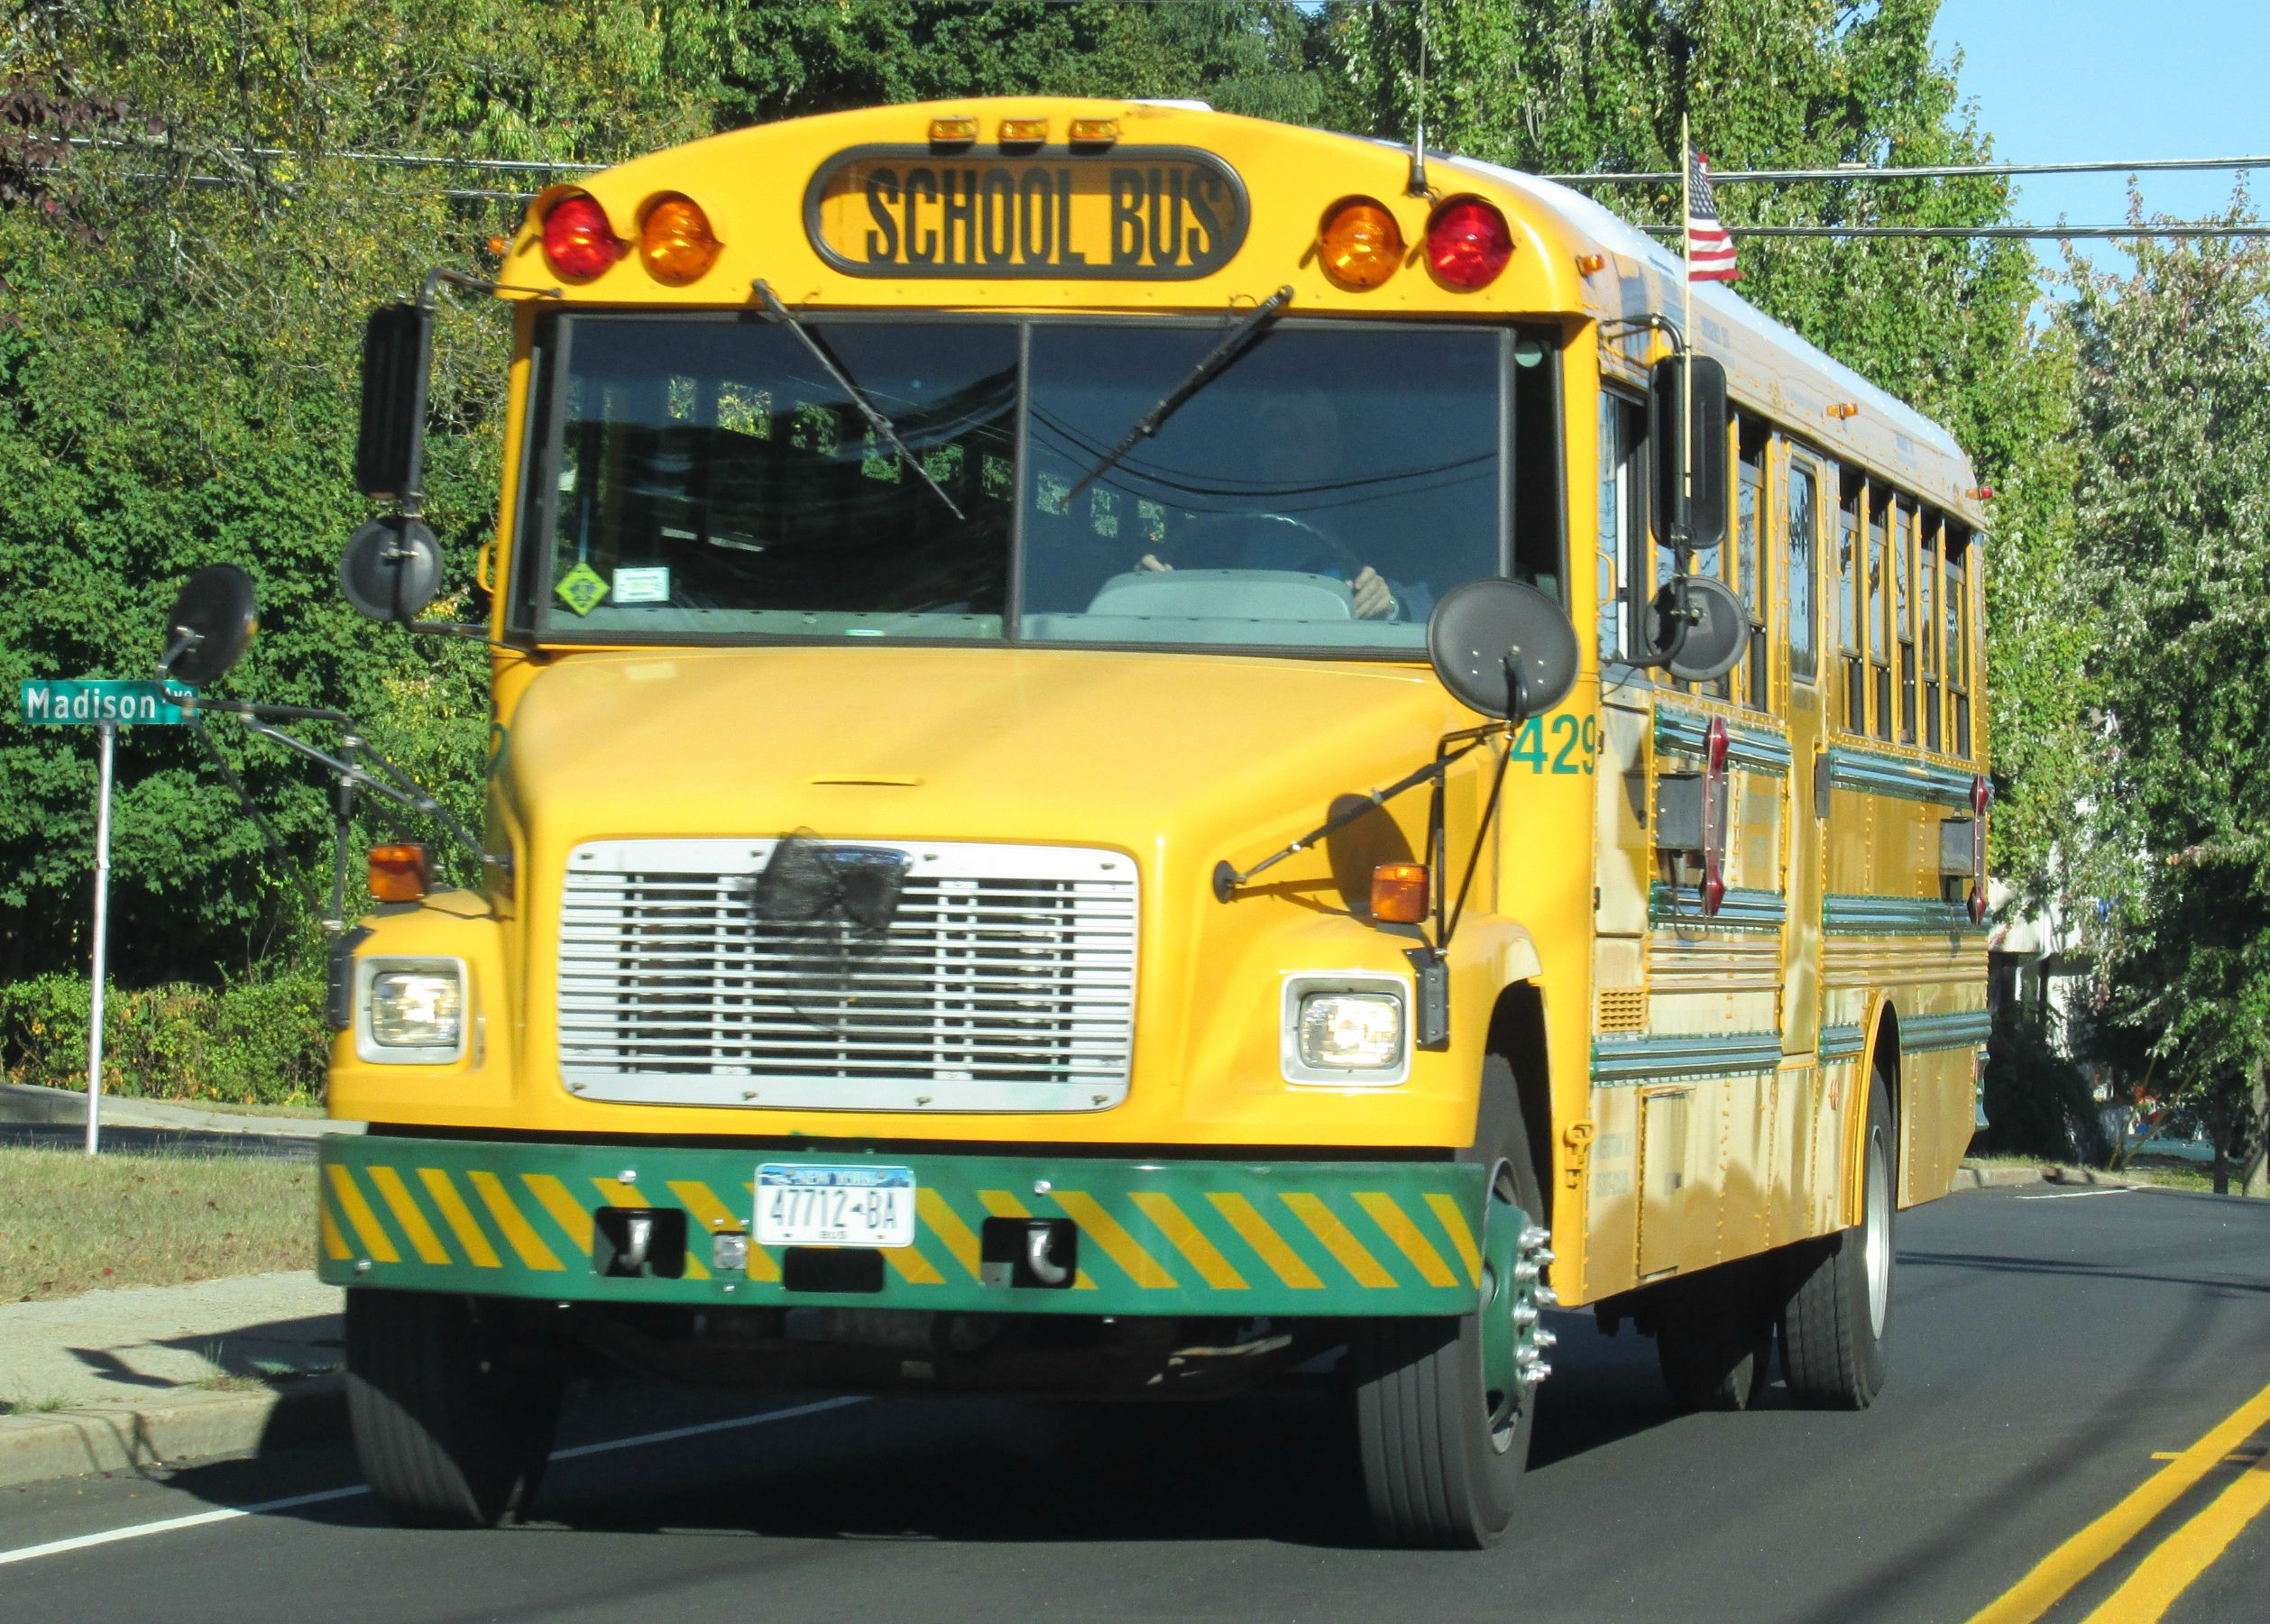 haverstraw transit school bus #429 | haverstraw transit | pinterest